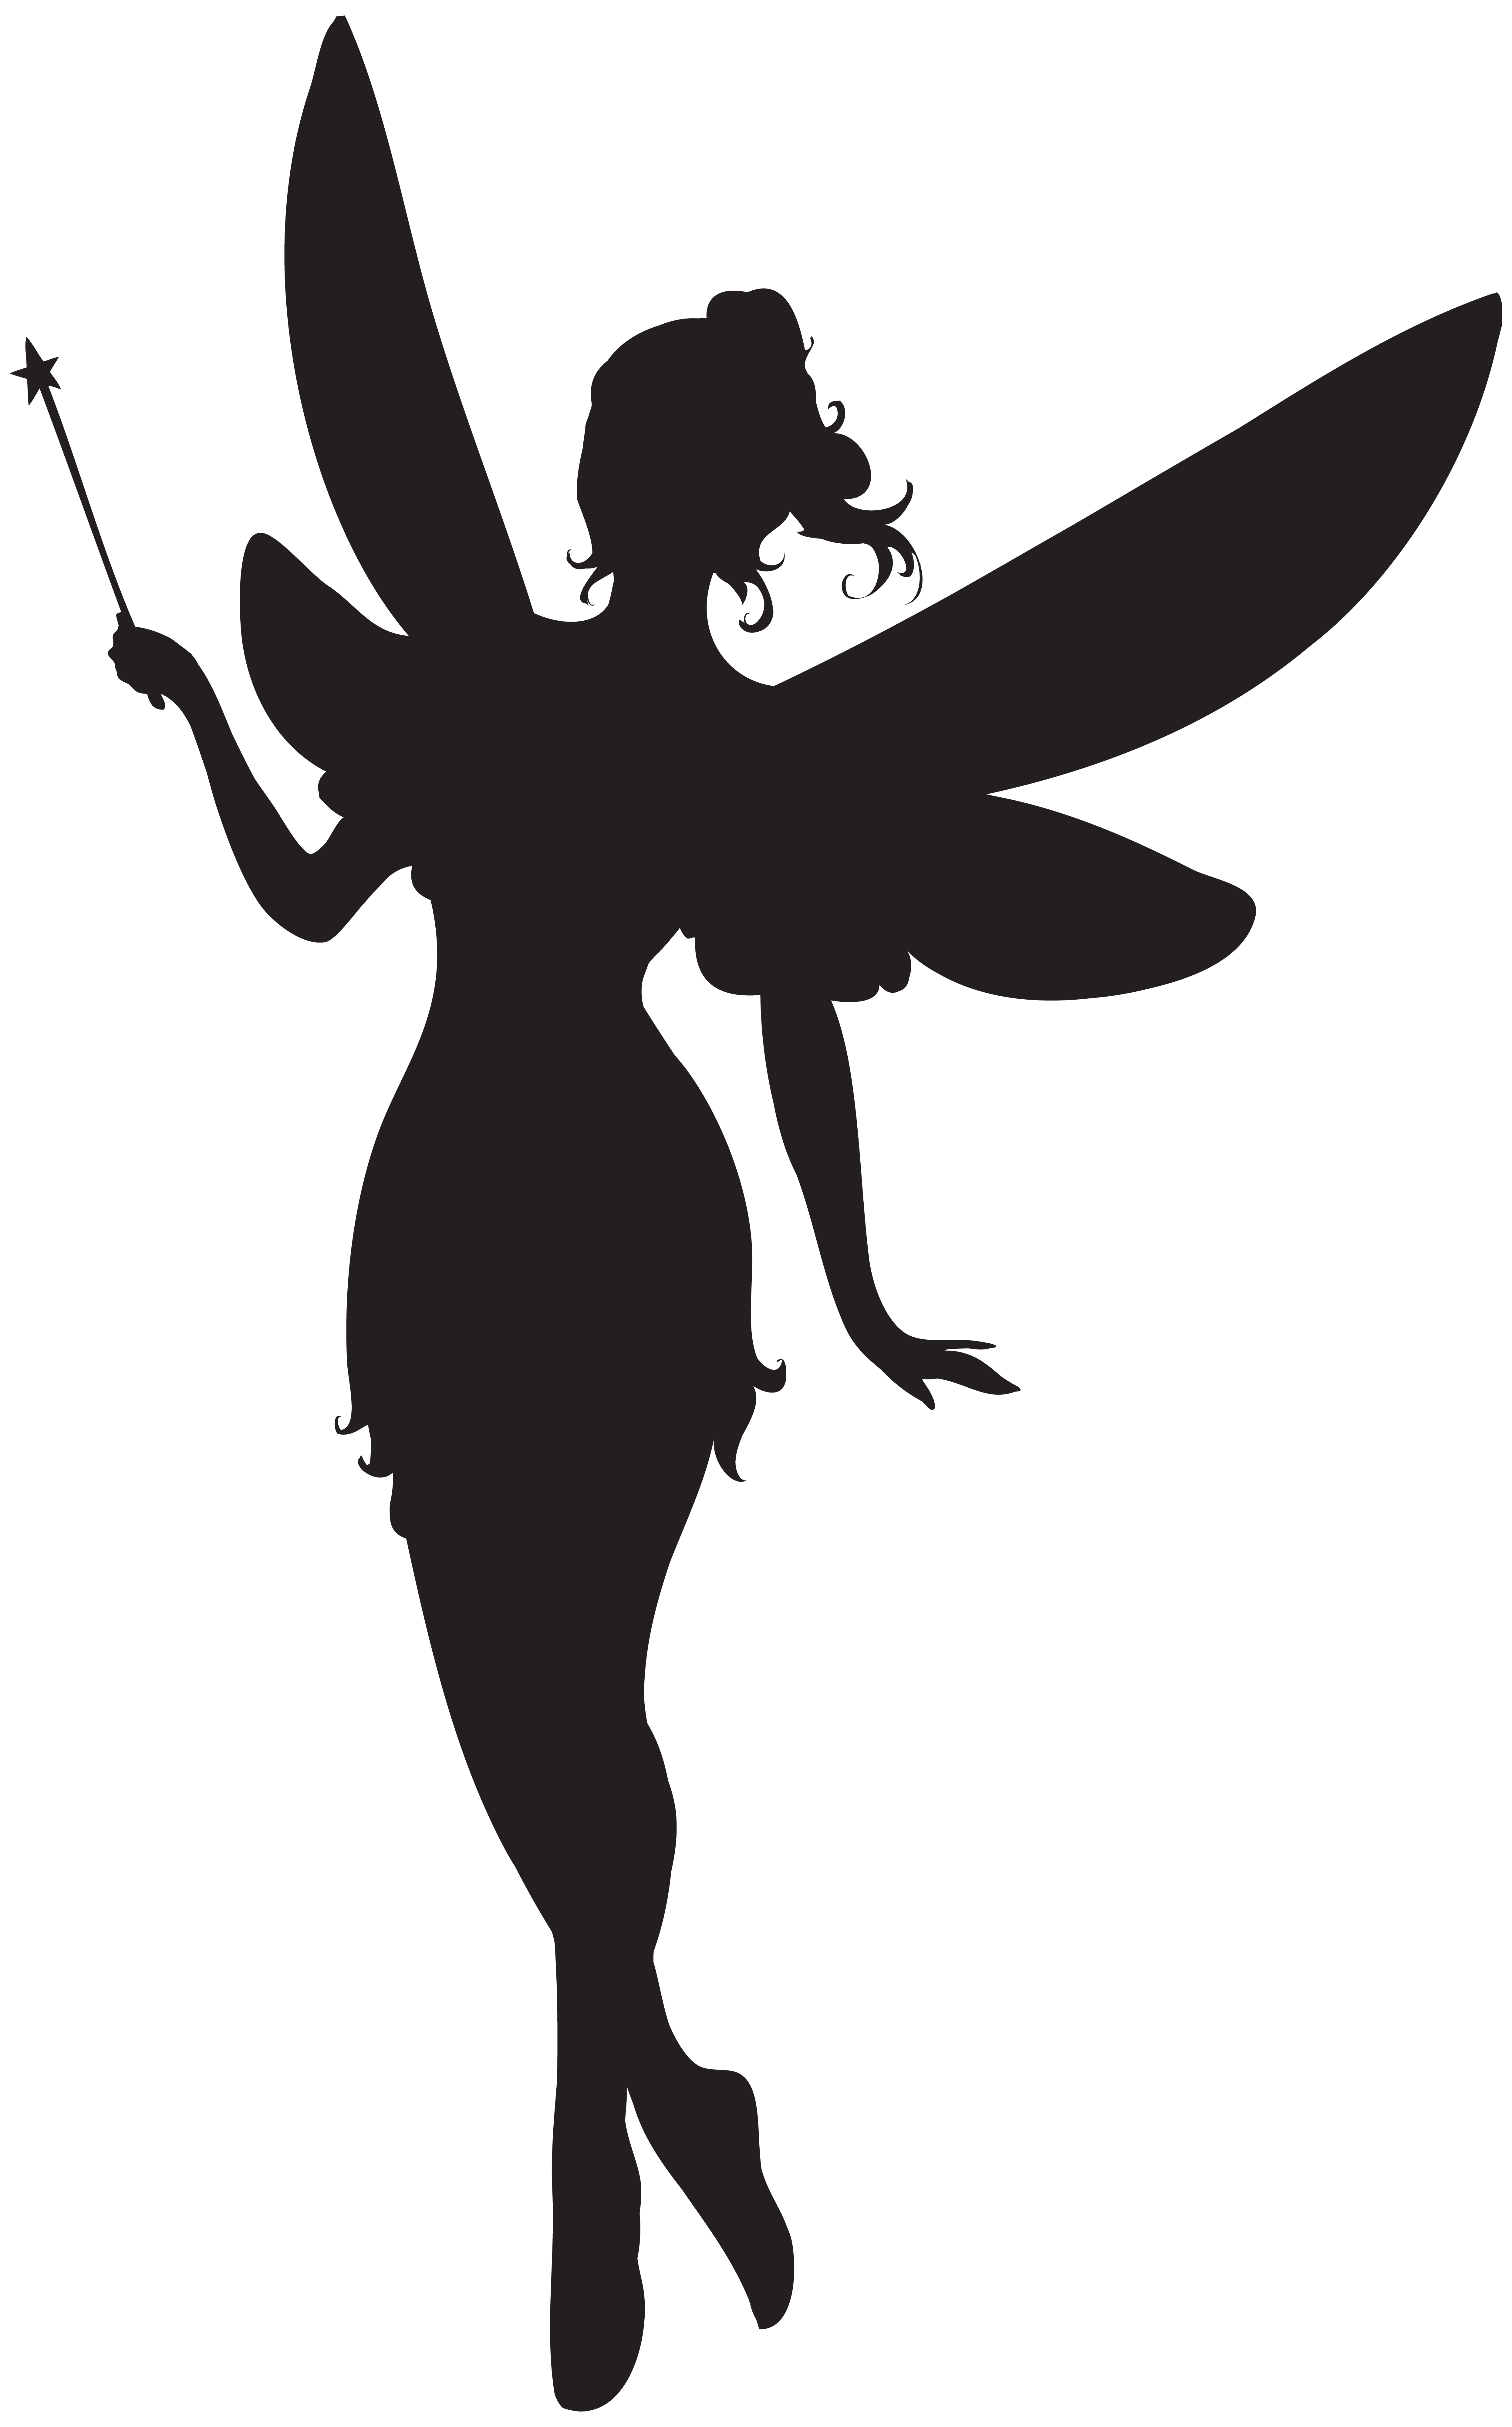 4984x8000 Fairy With Magic Wand Silhouette Png Clip Artu200b Gallery